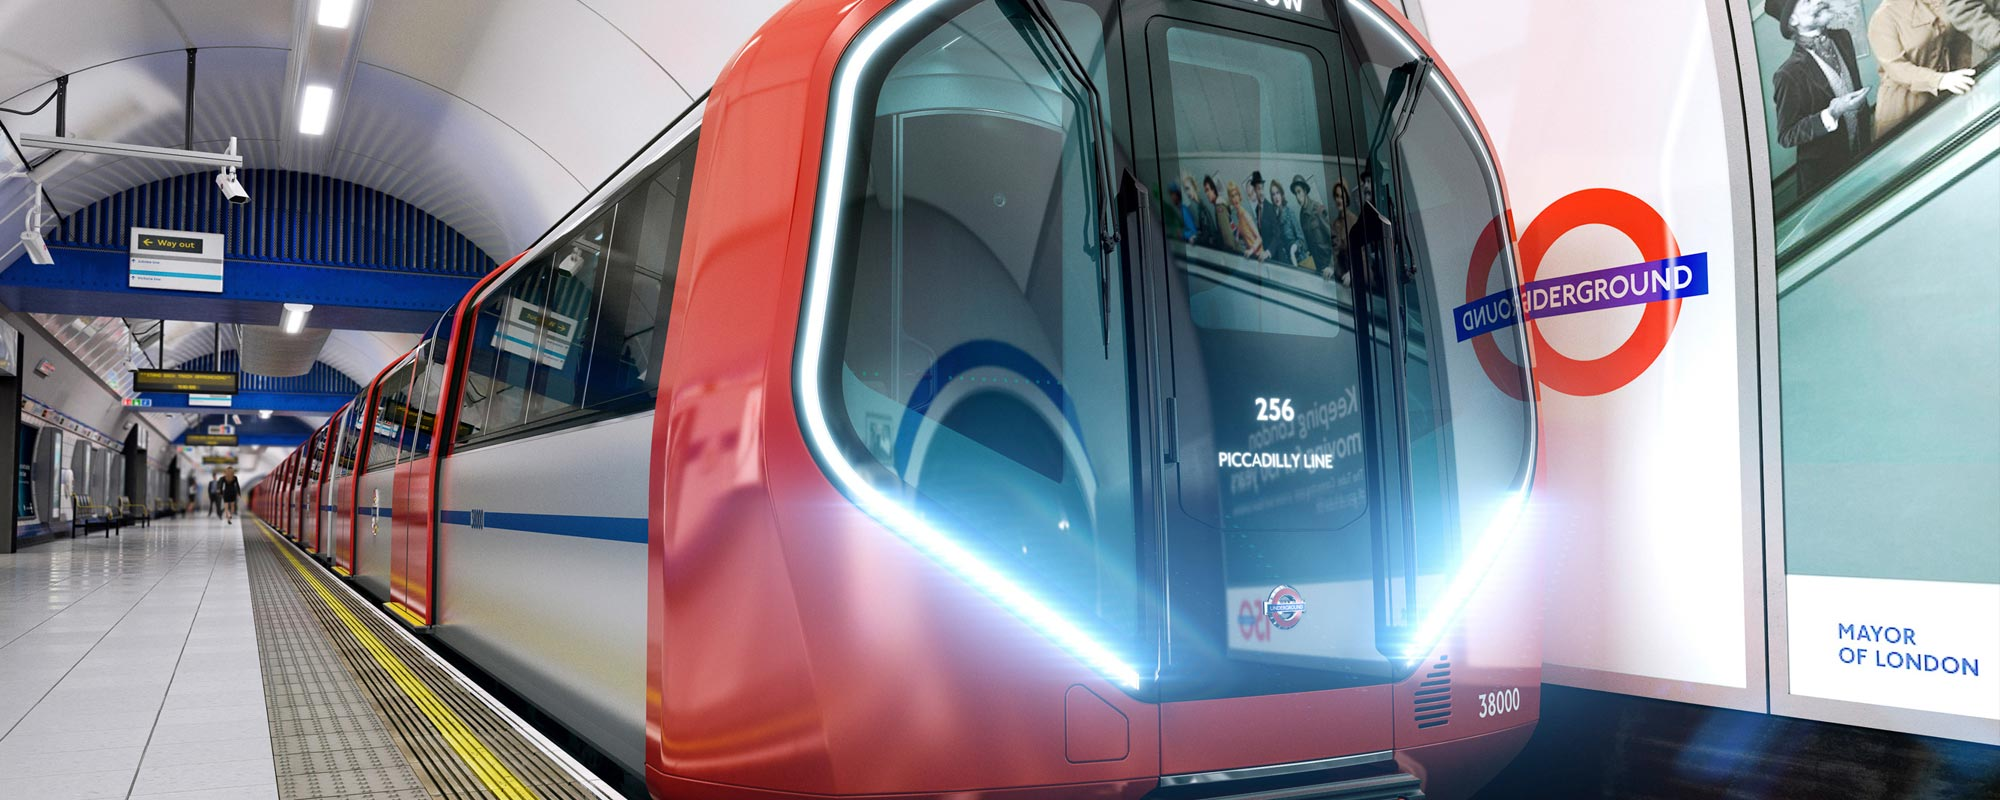 TfL announced that it has selected Exterion Media as its new commercial Partner